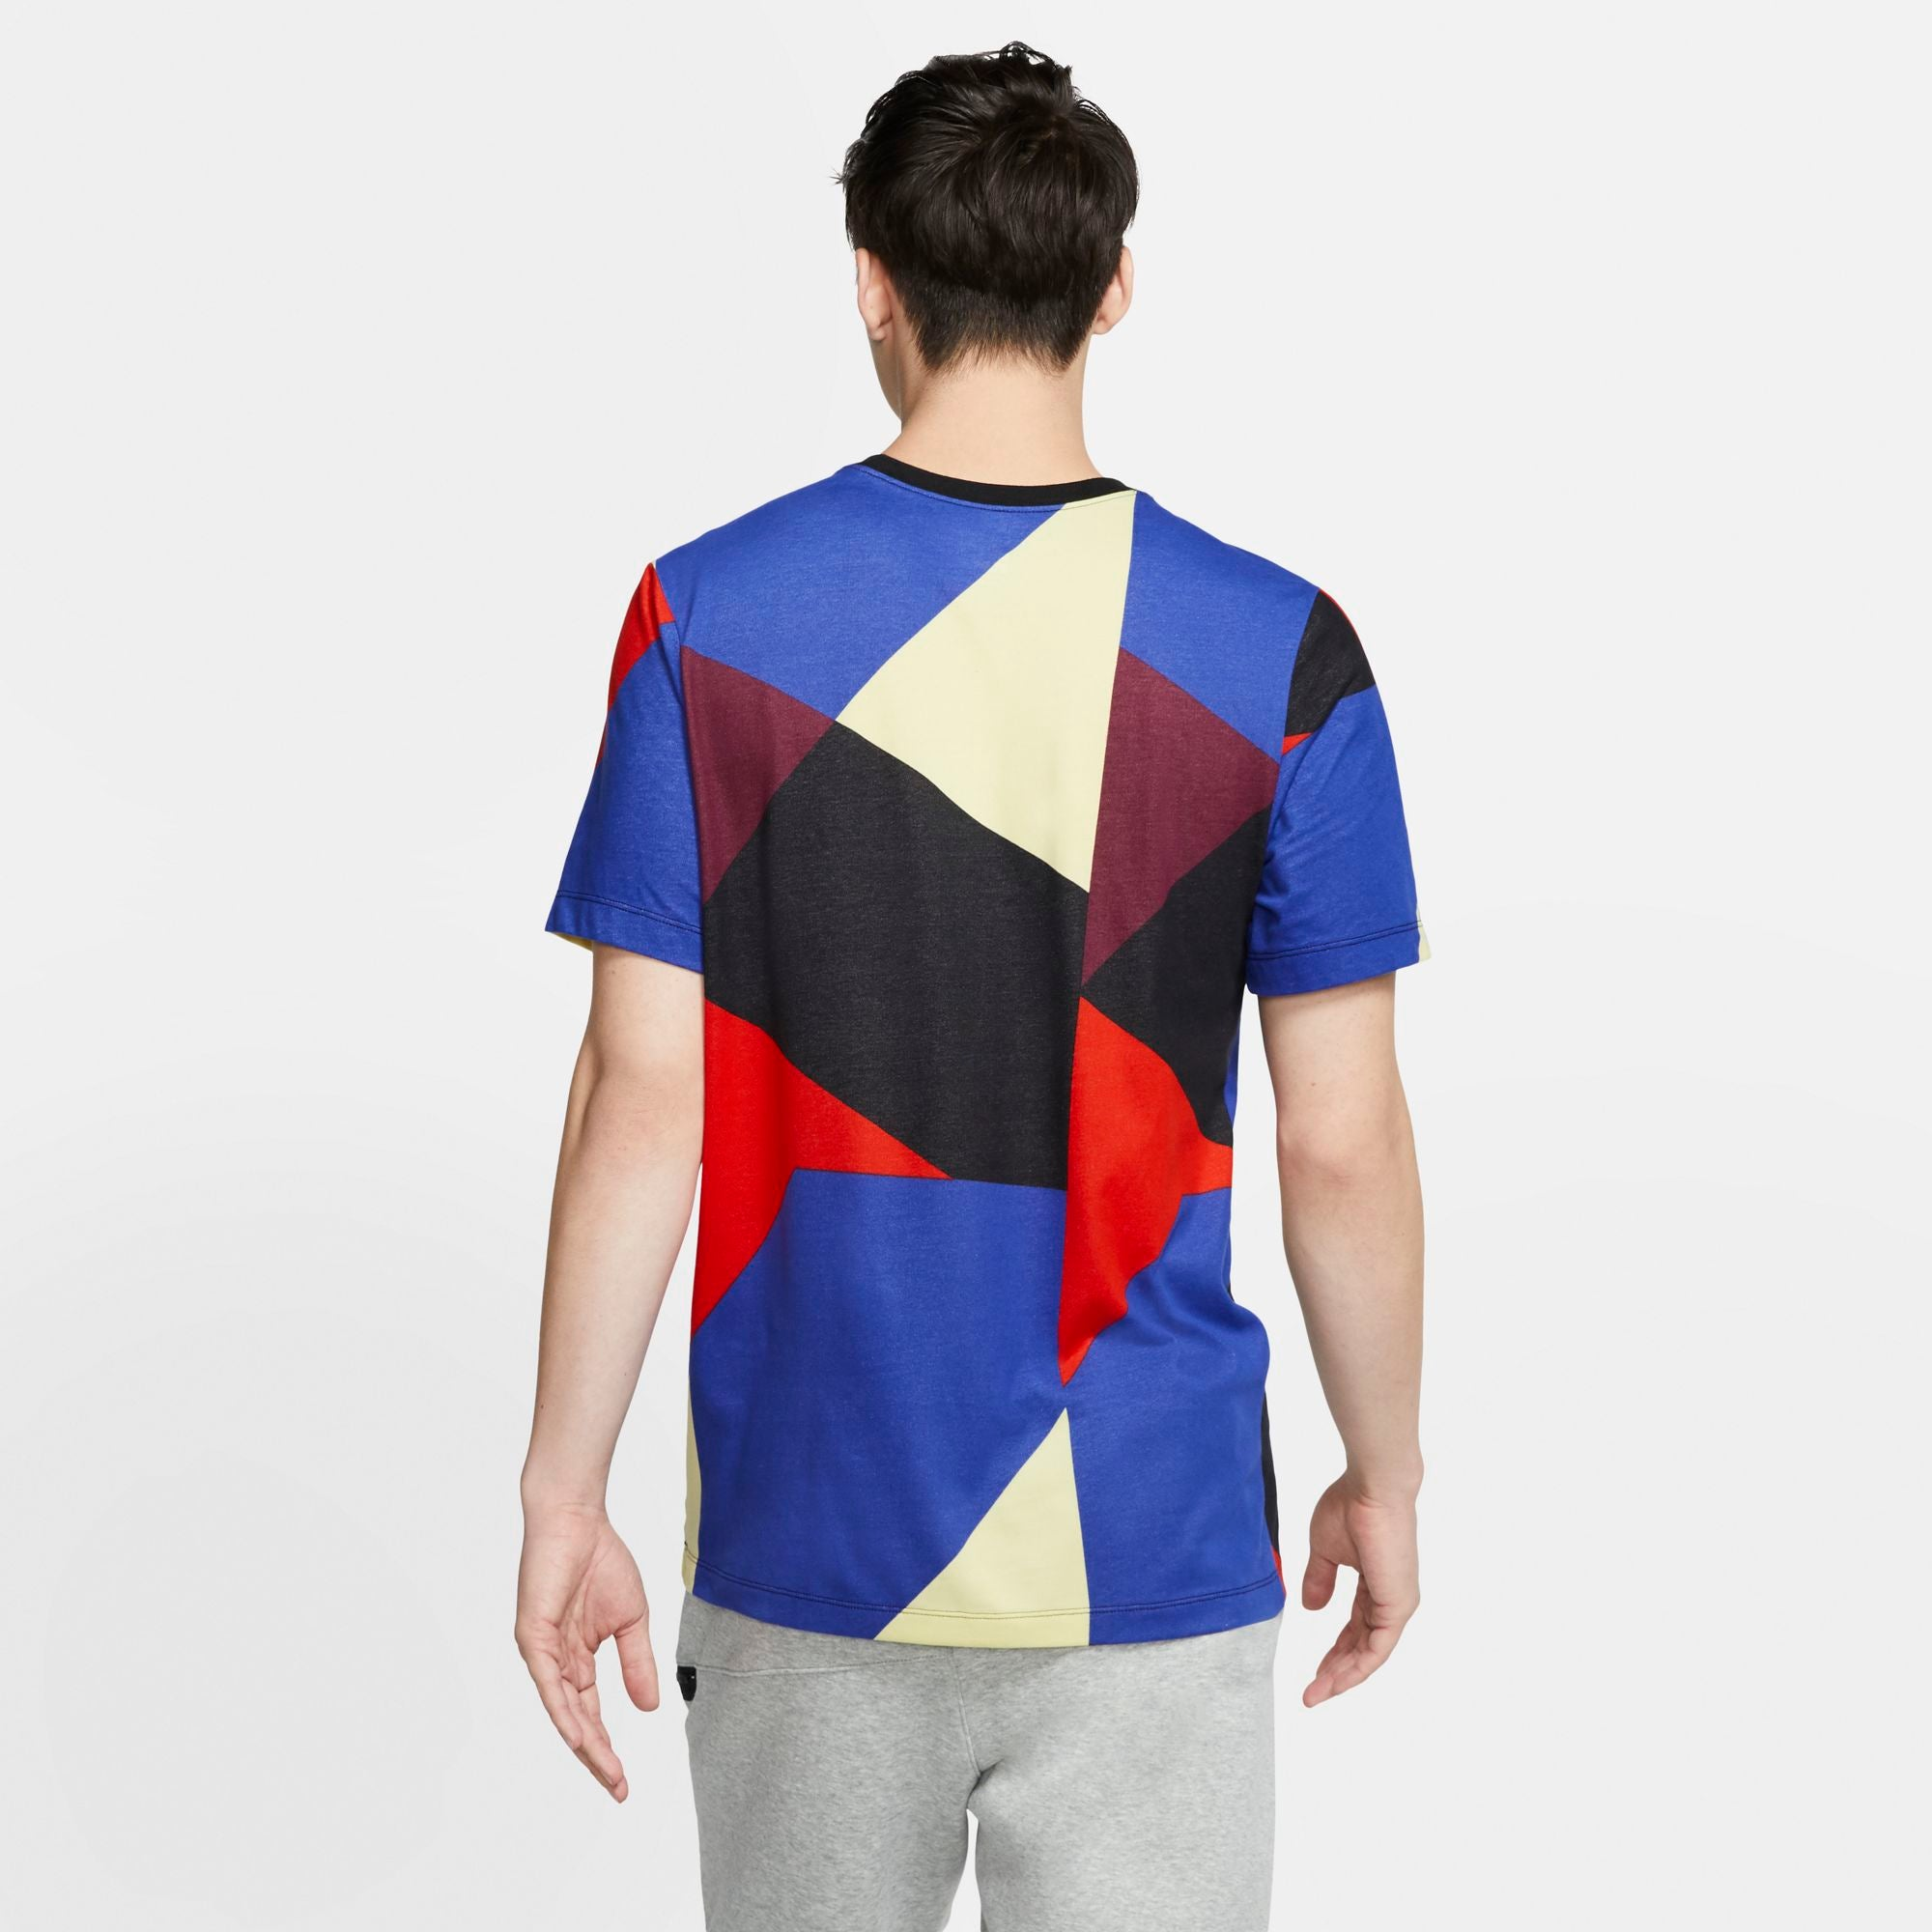 Nike Kyrie Basketball Edgy Dri-fit Tee - White/Black/Deep Royal Blue/Habanero Red